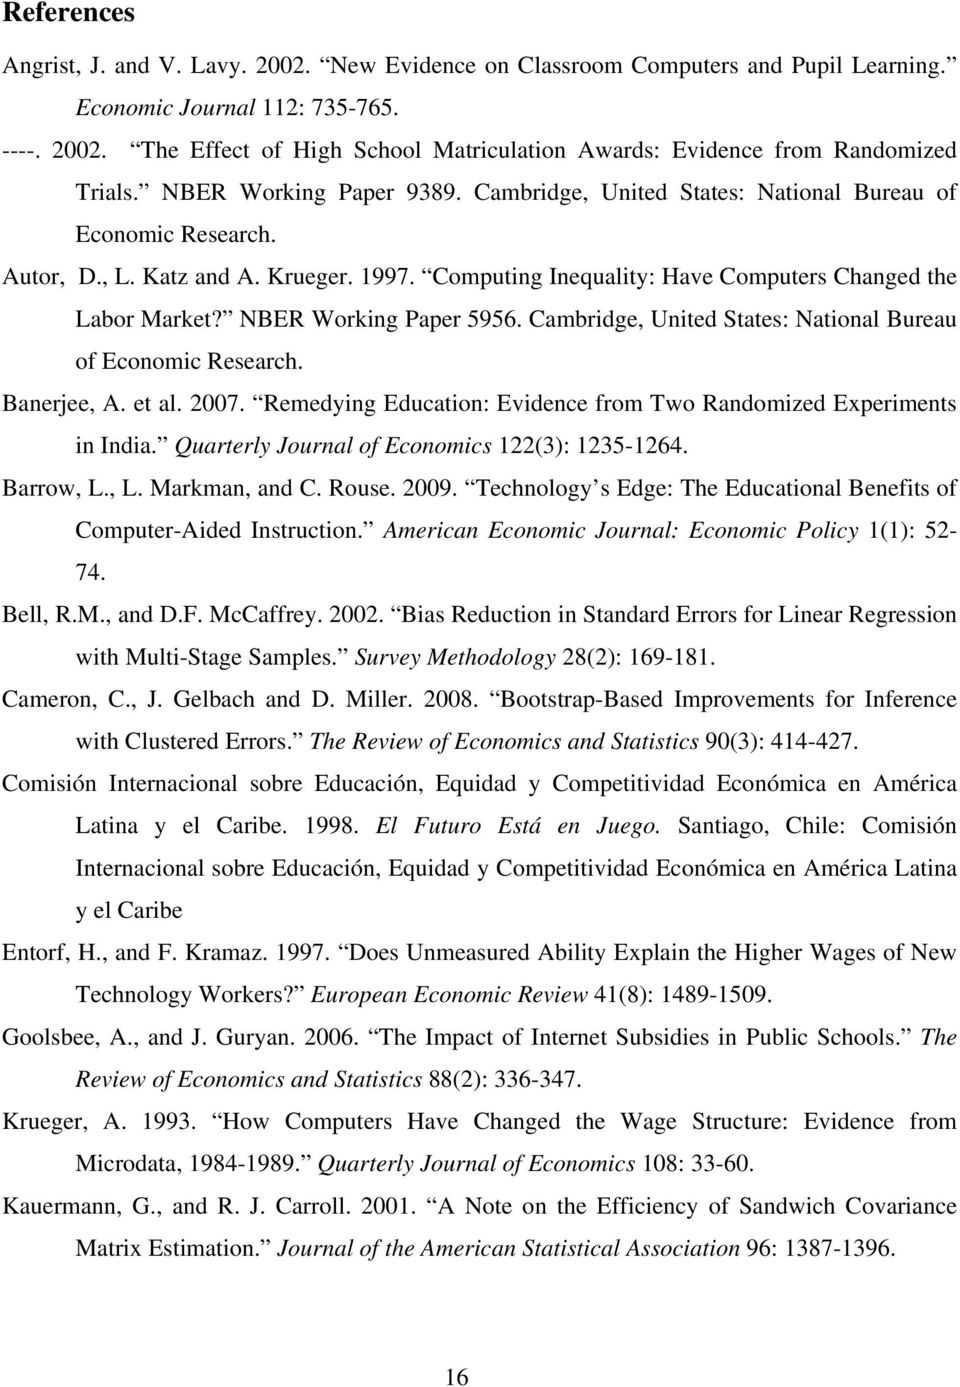 NBER Working Paper 5956. Cambridge, United States: National Bureau of Economic Research. Banerjee, A. et al. 2007. Remedying Education: Evidence from Two Randomized Experiments in India.